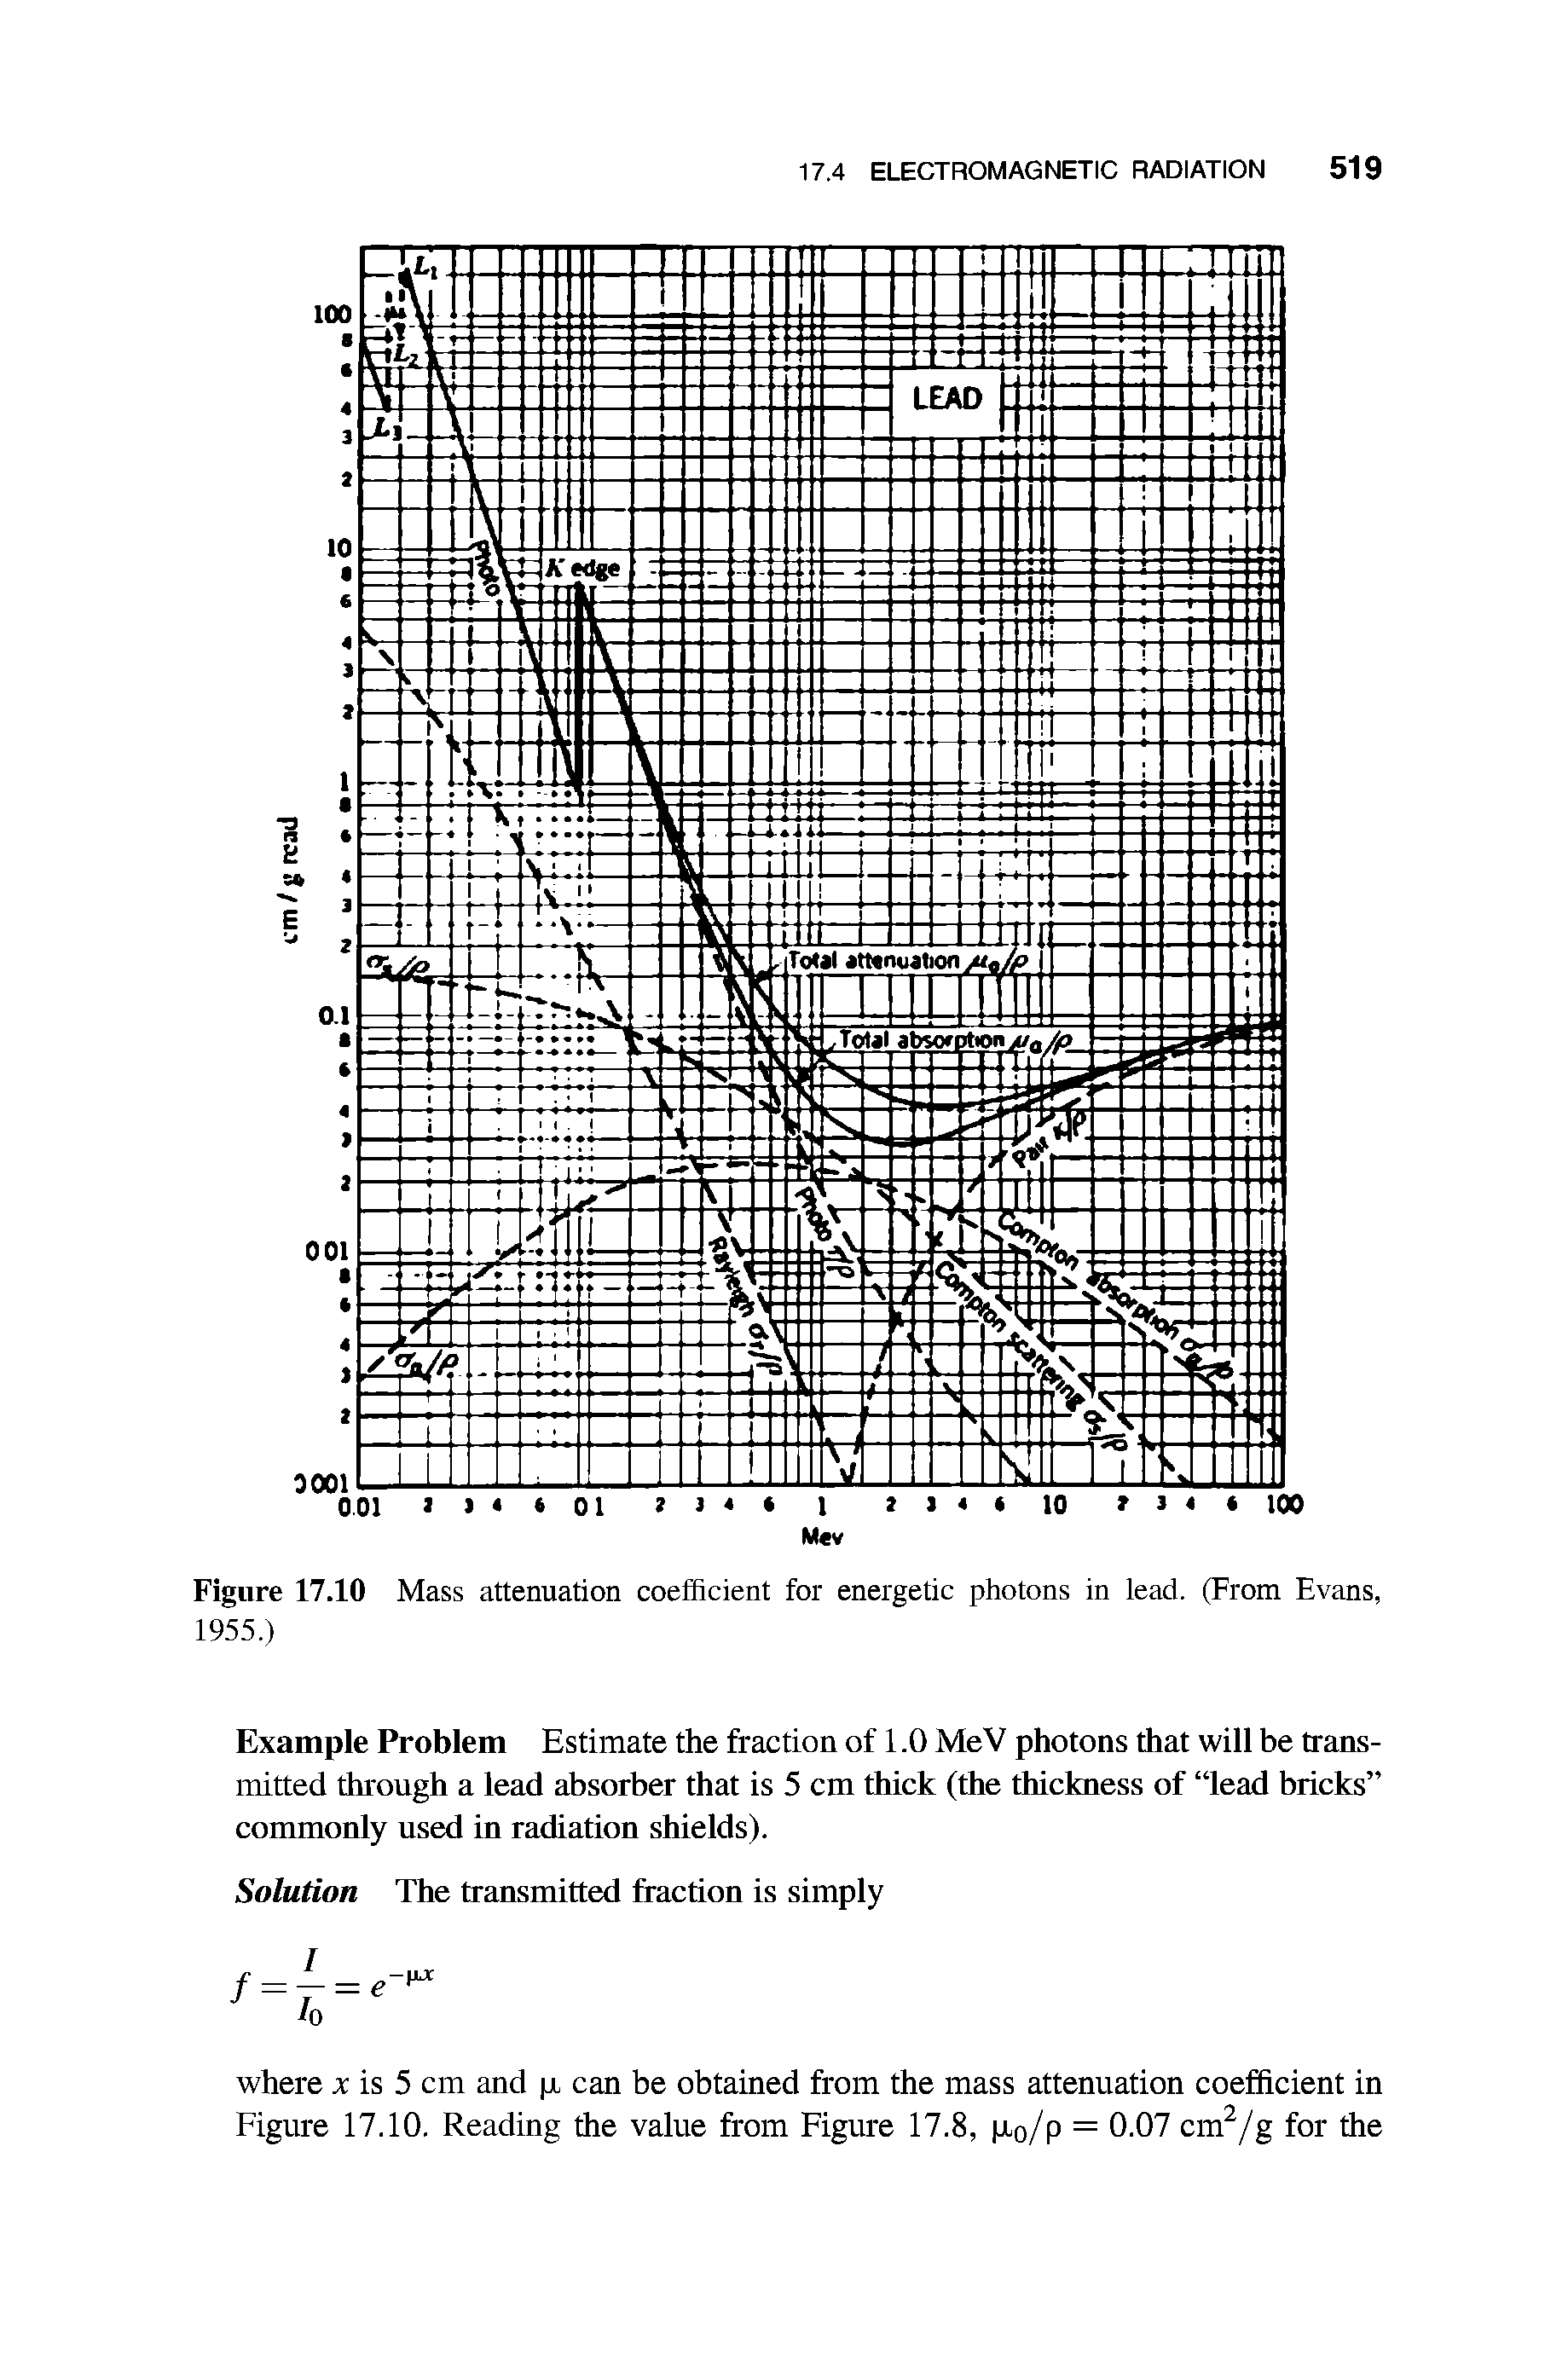 "Figure 17.10 Mass attenuation coefficient for <a href=""/info/energetic_photons"">energetic photons</a> in lead. (From Evans, 1955.)"